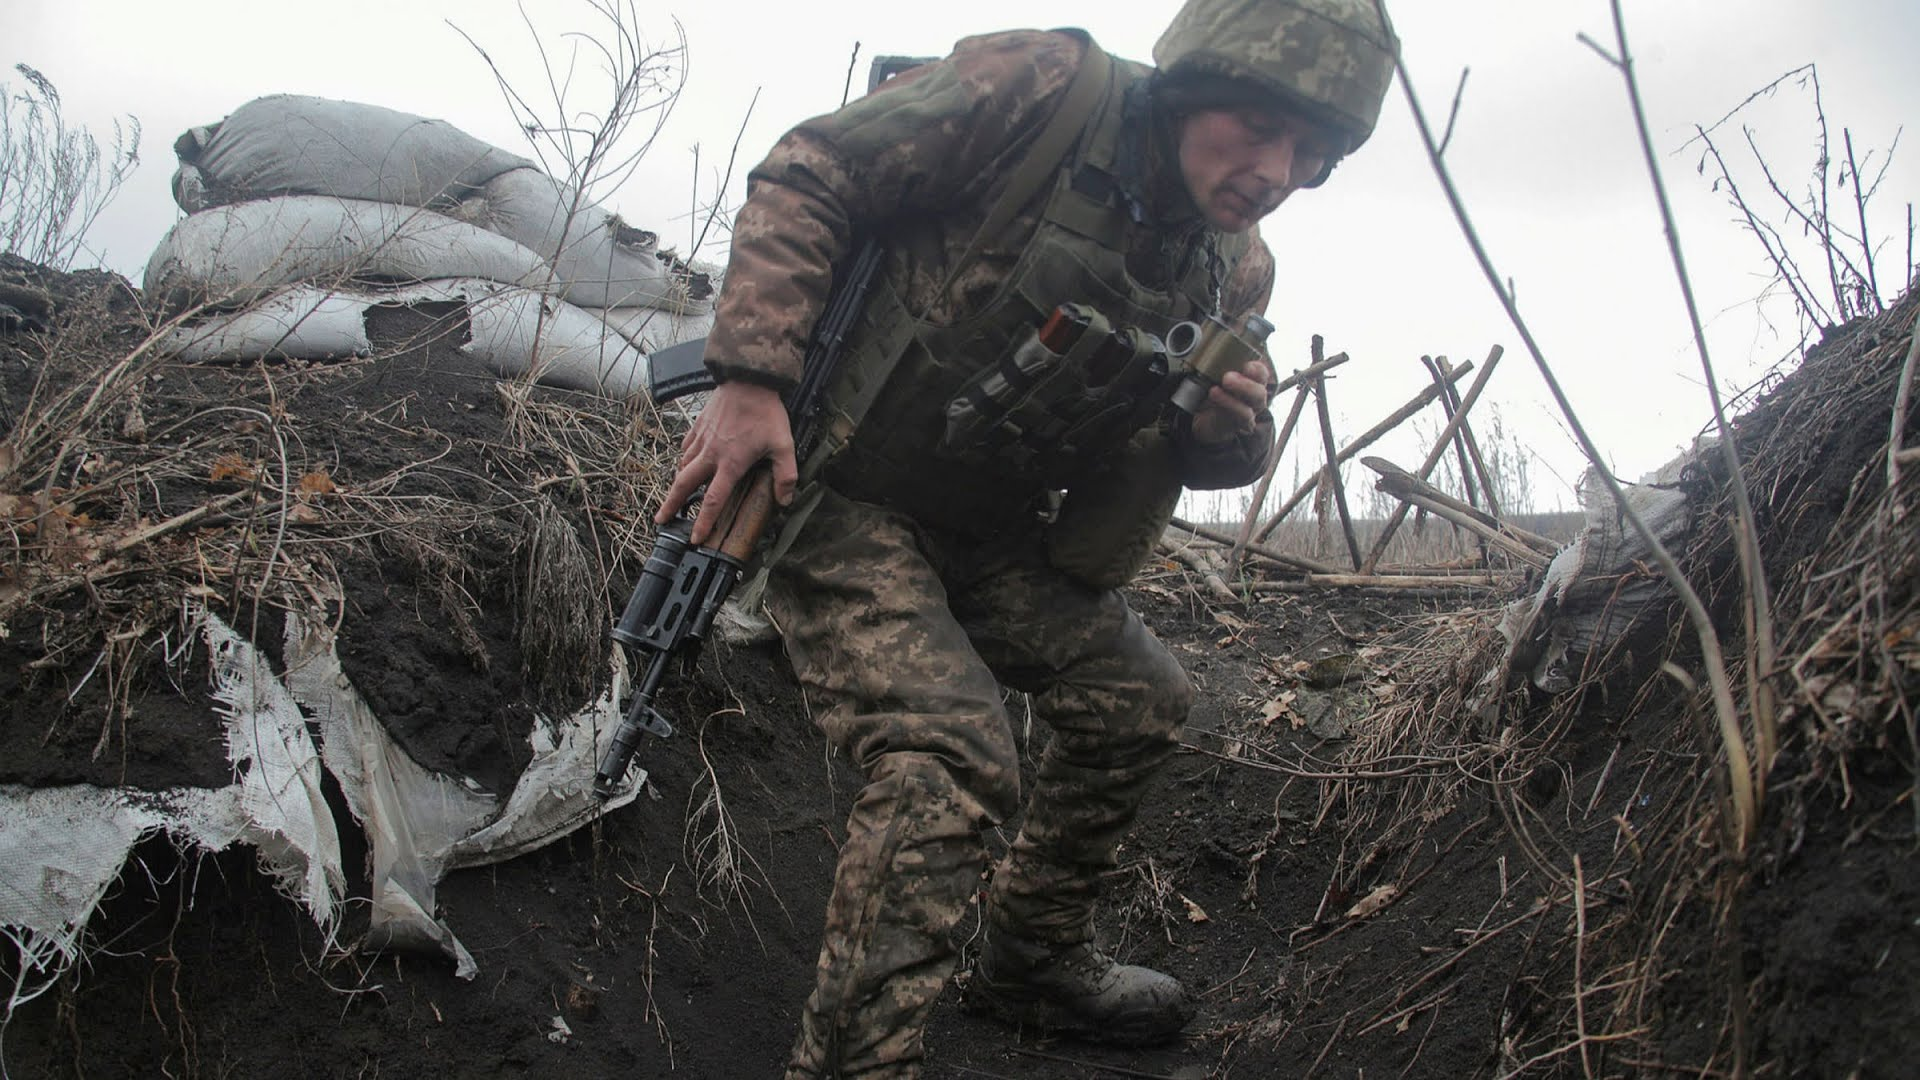 A service member of the Ukrainian armed forces is seen at fighting positions on the line of separation near the rebel-controlled city of Donetsk, Ukraine